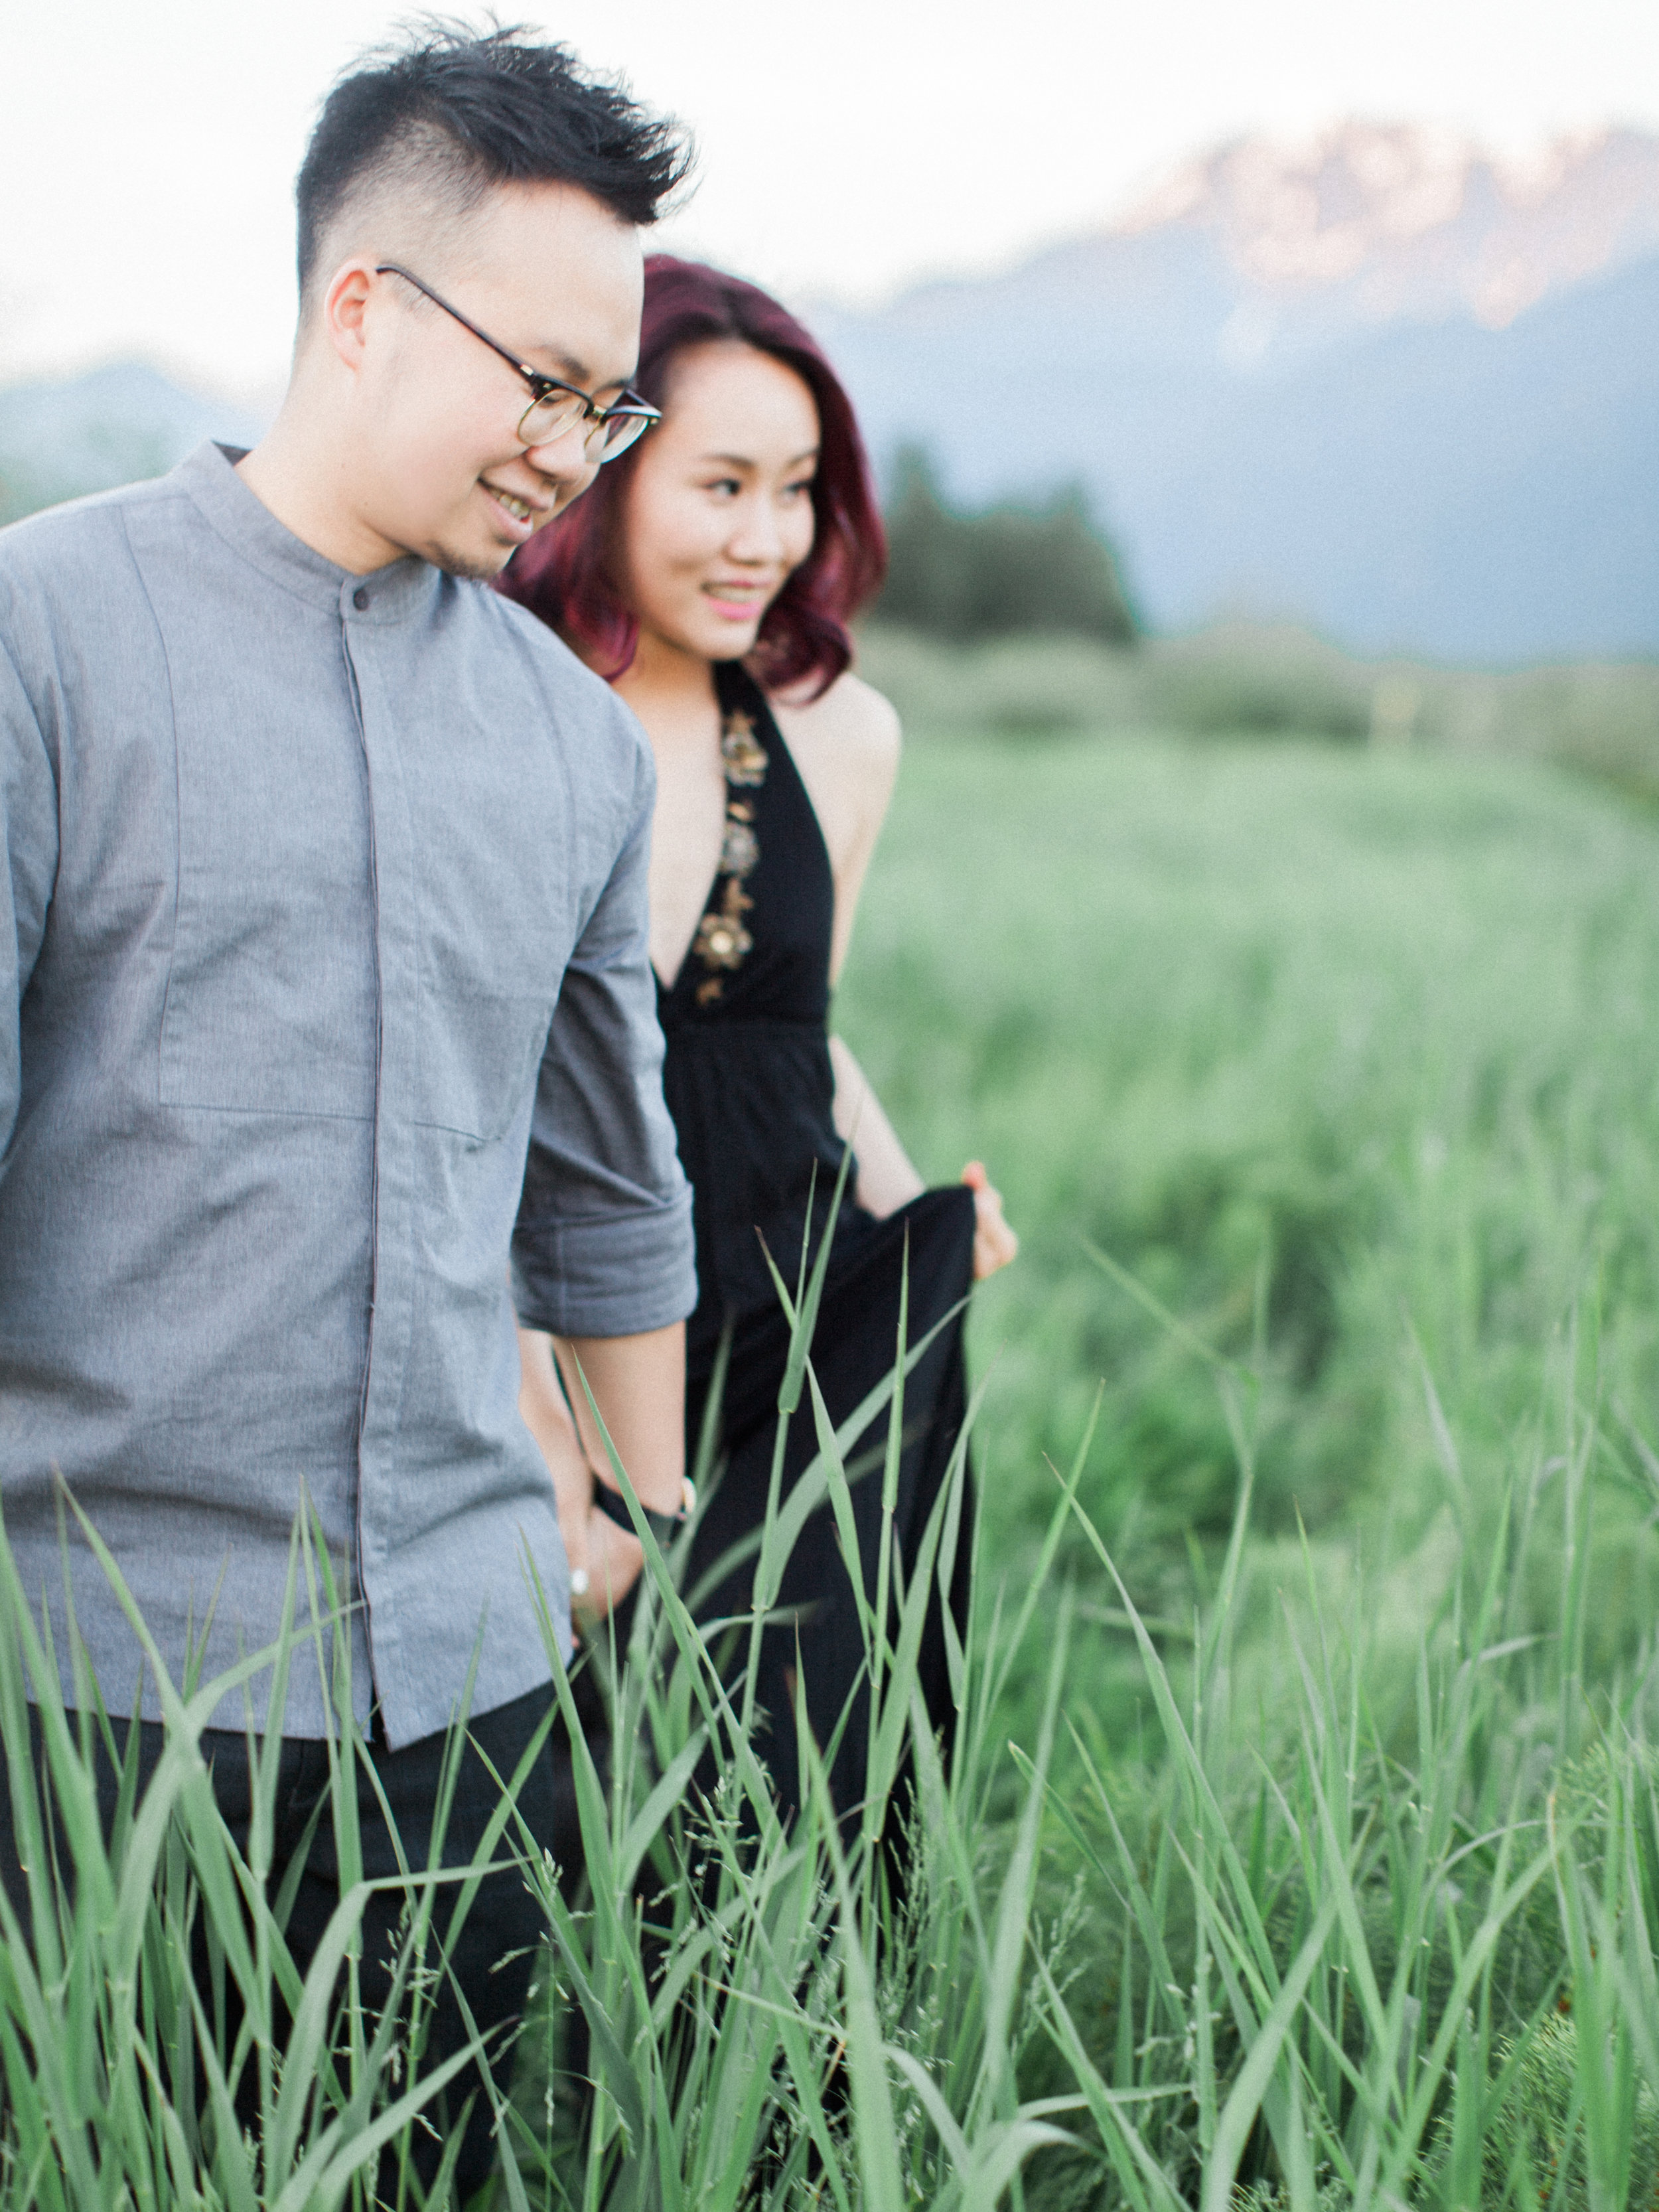 20170528Maple_Ridge_Engagement_Mary_Marco_Prewedding-51 copy.jpg